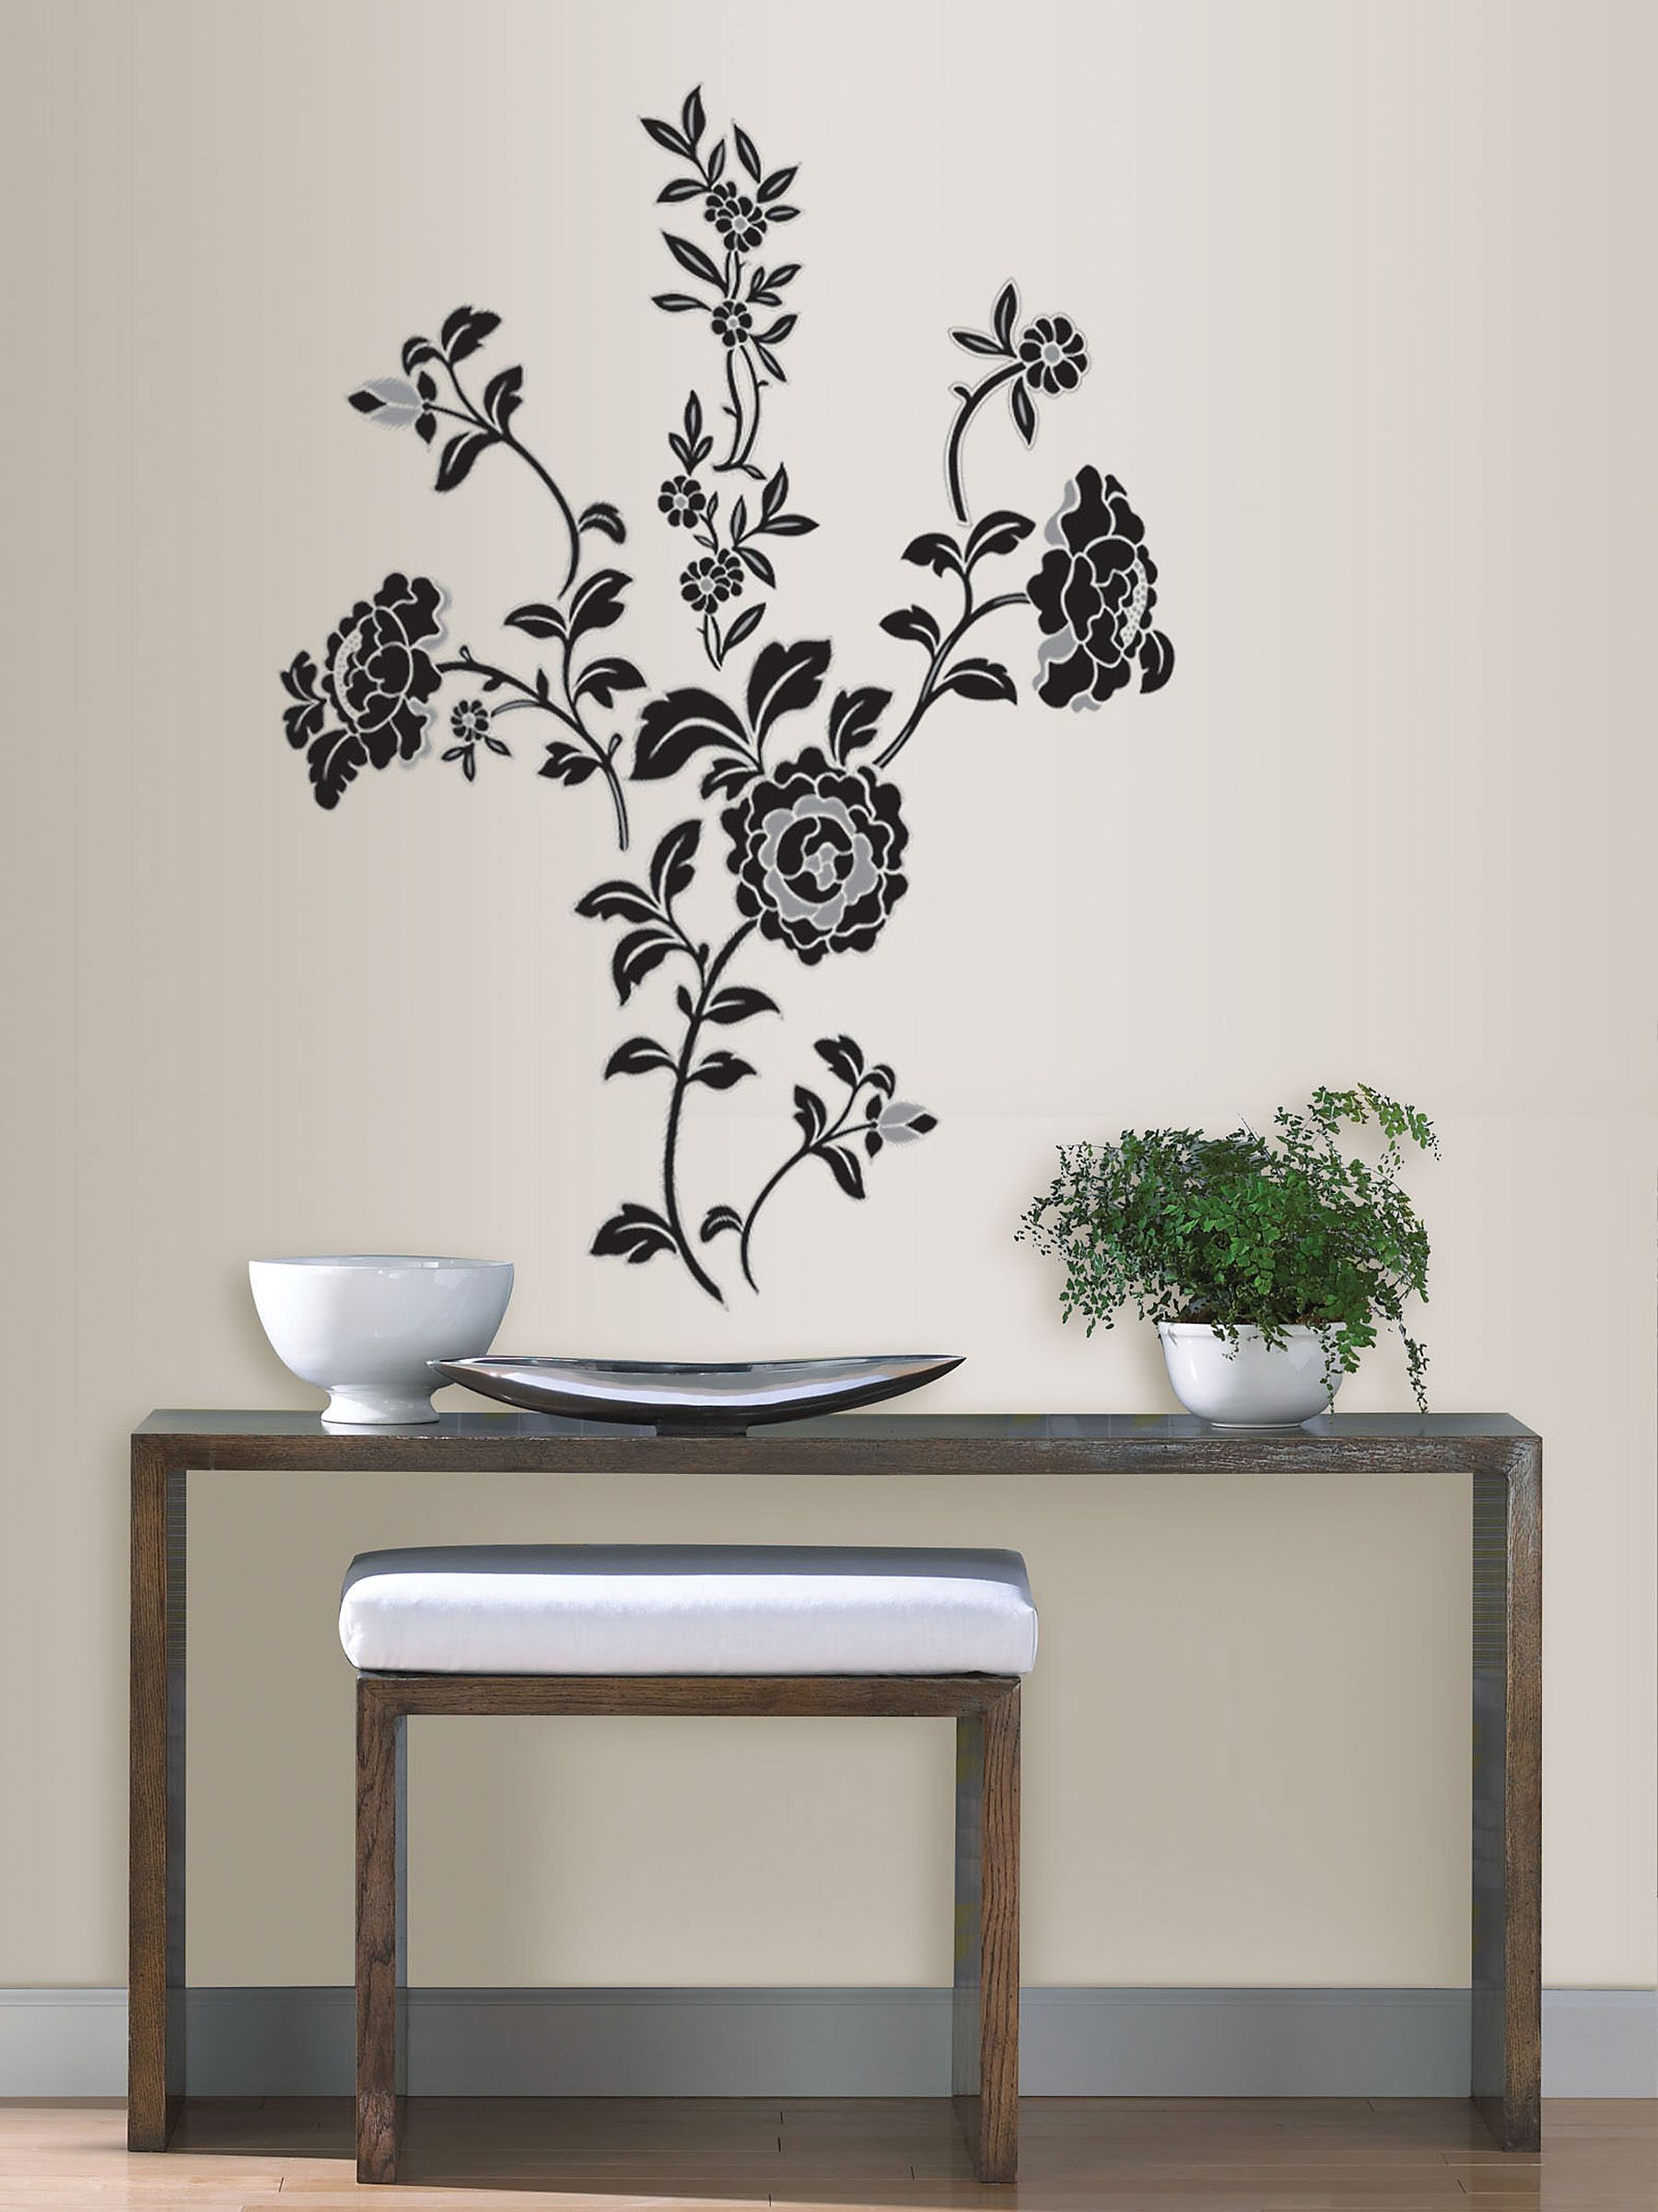 vinyl wall decals brocade black floral wall sticker kit 29612